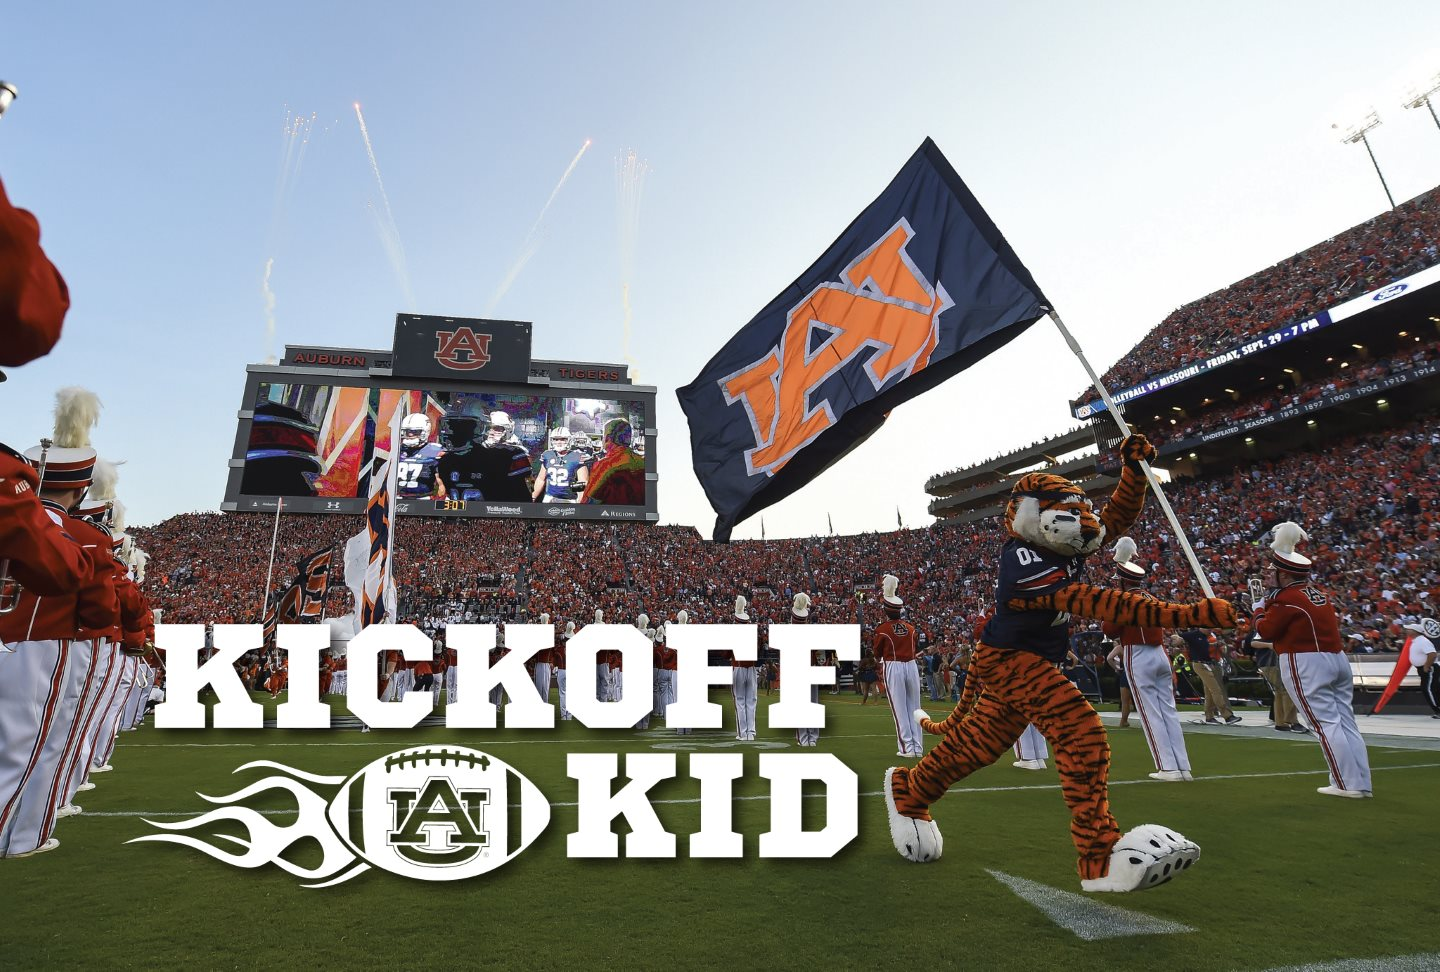 Kickoff Kid Header - Aubie Leading the charge on gameday.